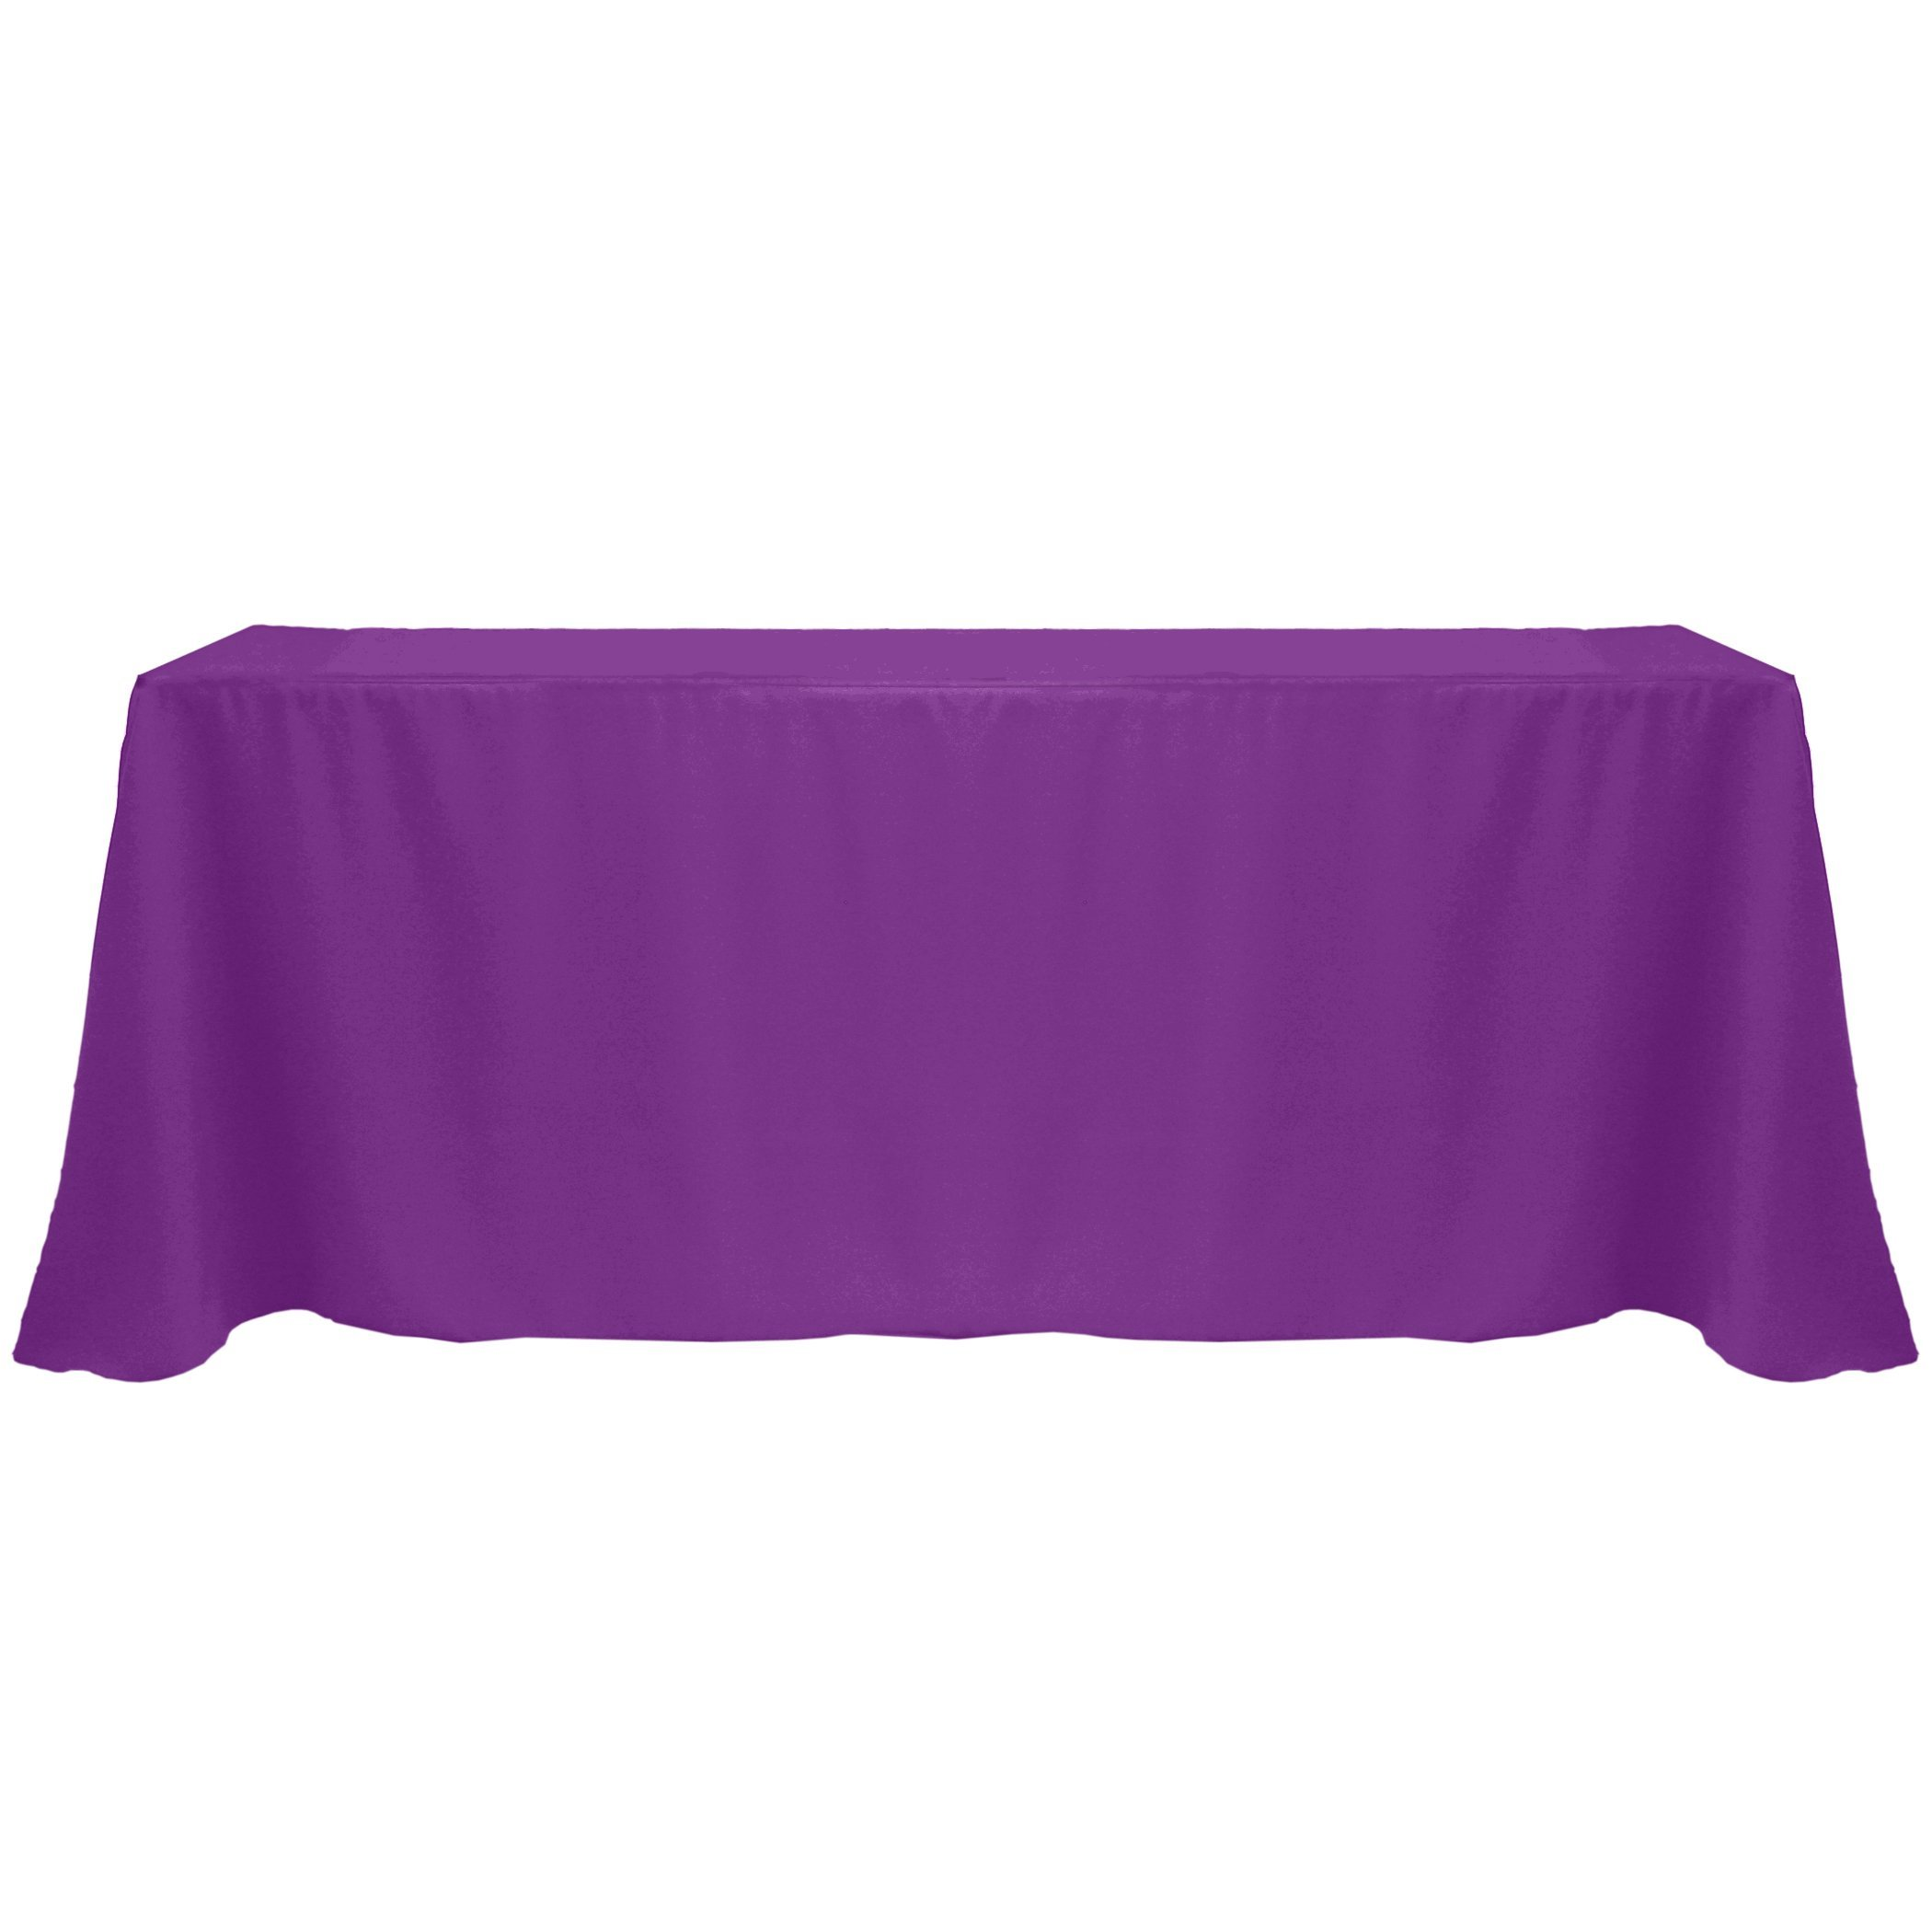 Ultimate Textile (12 Pack) 108 x 156-Inch Rectangular Polyester Linen Tablecloth with Rounded Corners - for Wedding, Restaurant or Banquet use, Plum